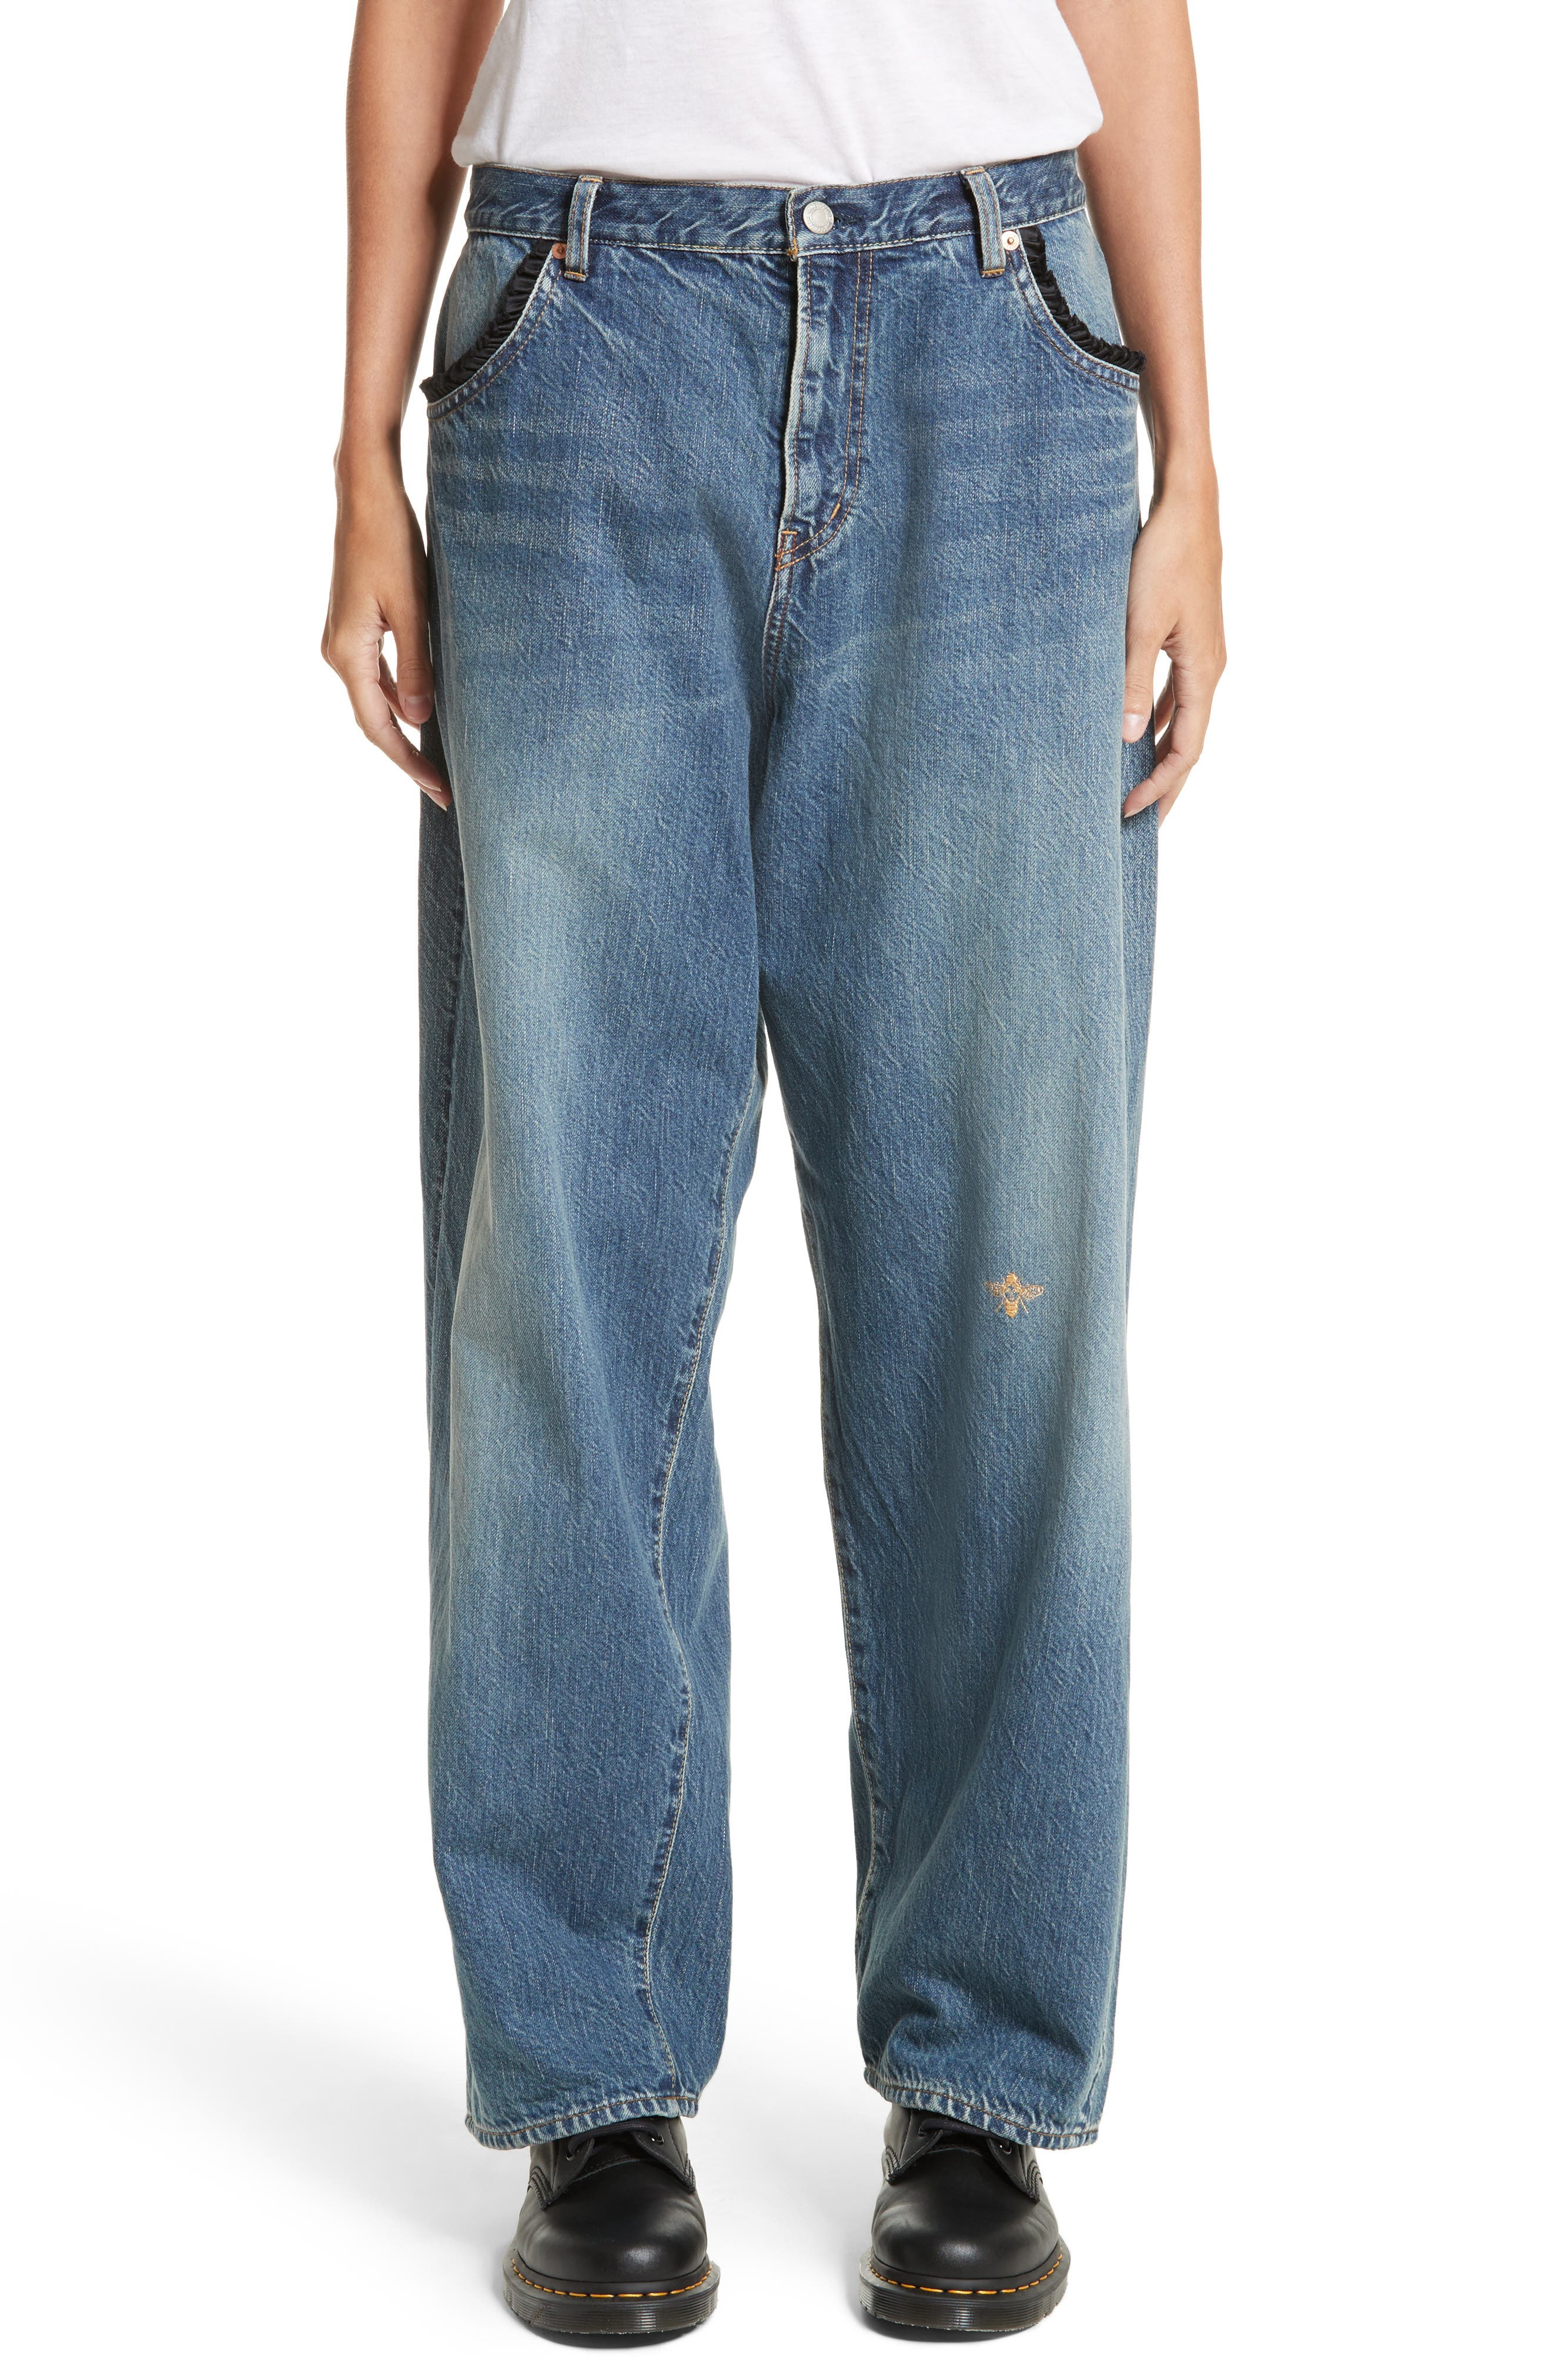 Undercover Embroidered Bee Jeans